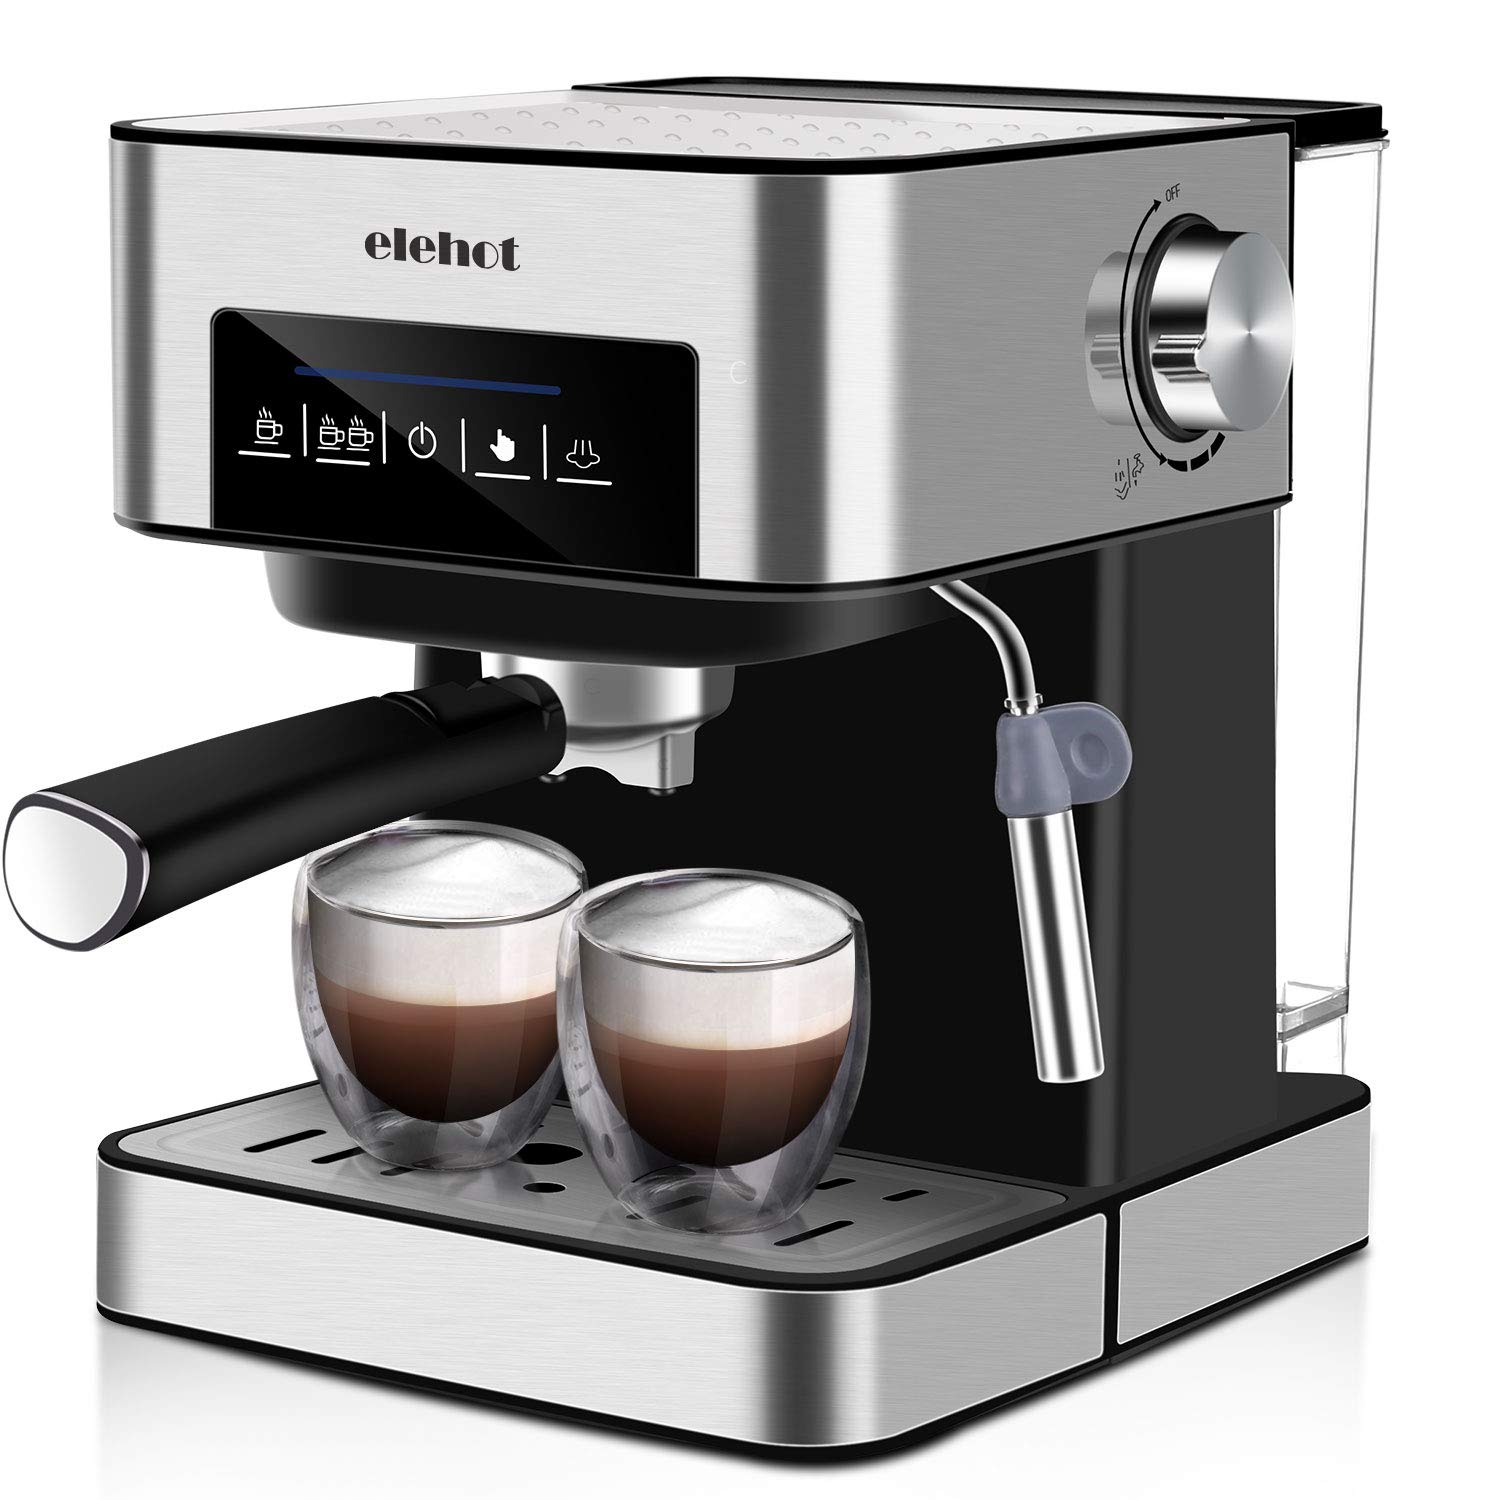 ELEHOT Coffee Makers Espresso Machine with 15 Bar Pump and Milk Frother Stainless Steel,850W (BLACK)